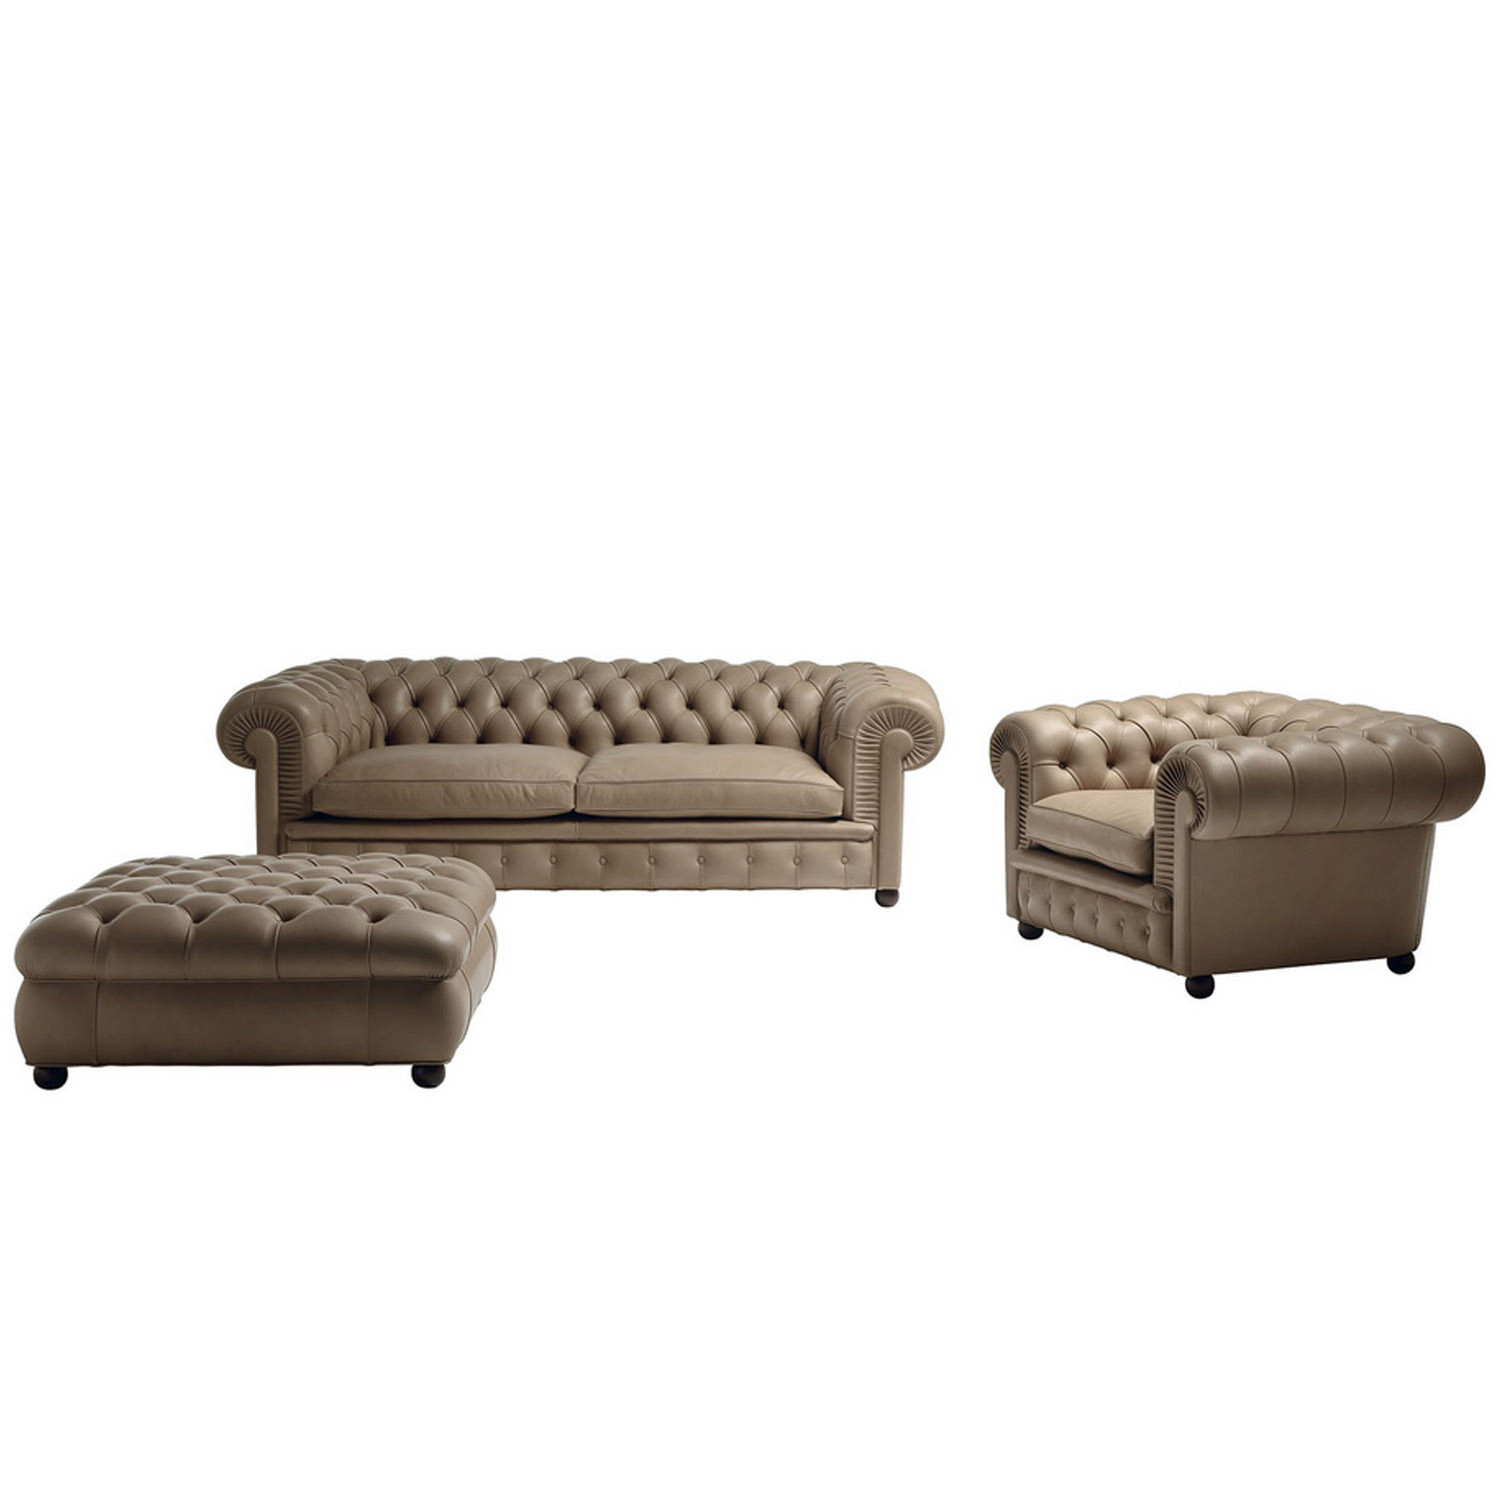 Chester One Sofa, Armchair and Pouf